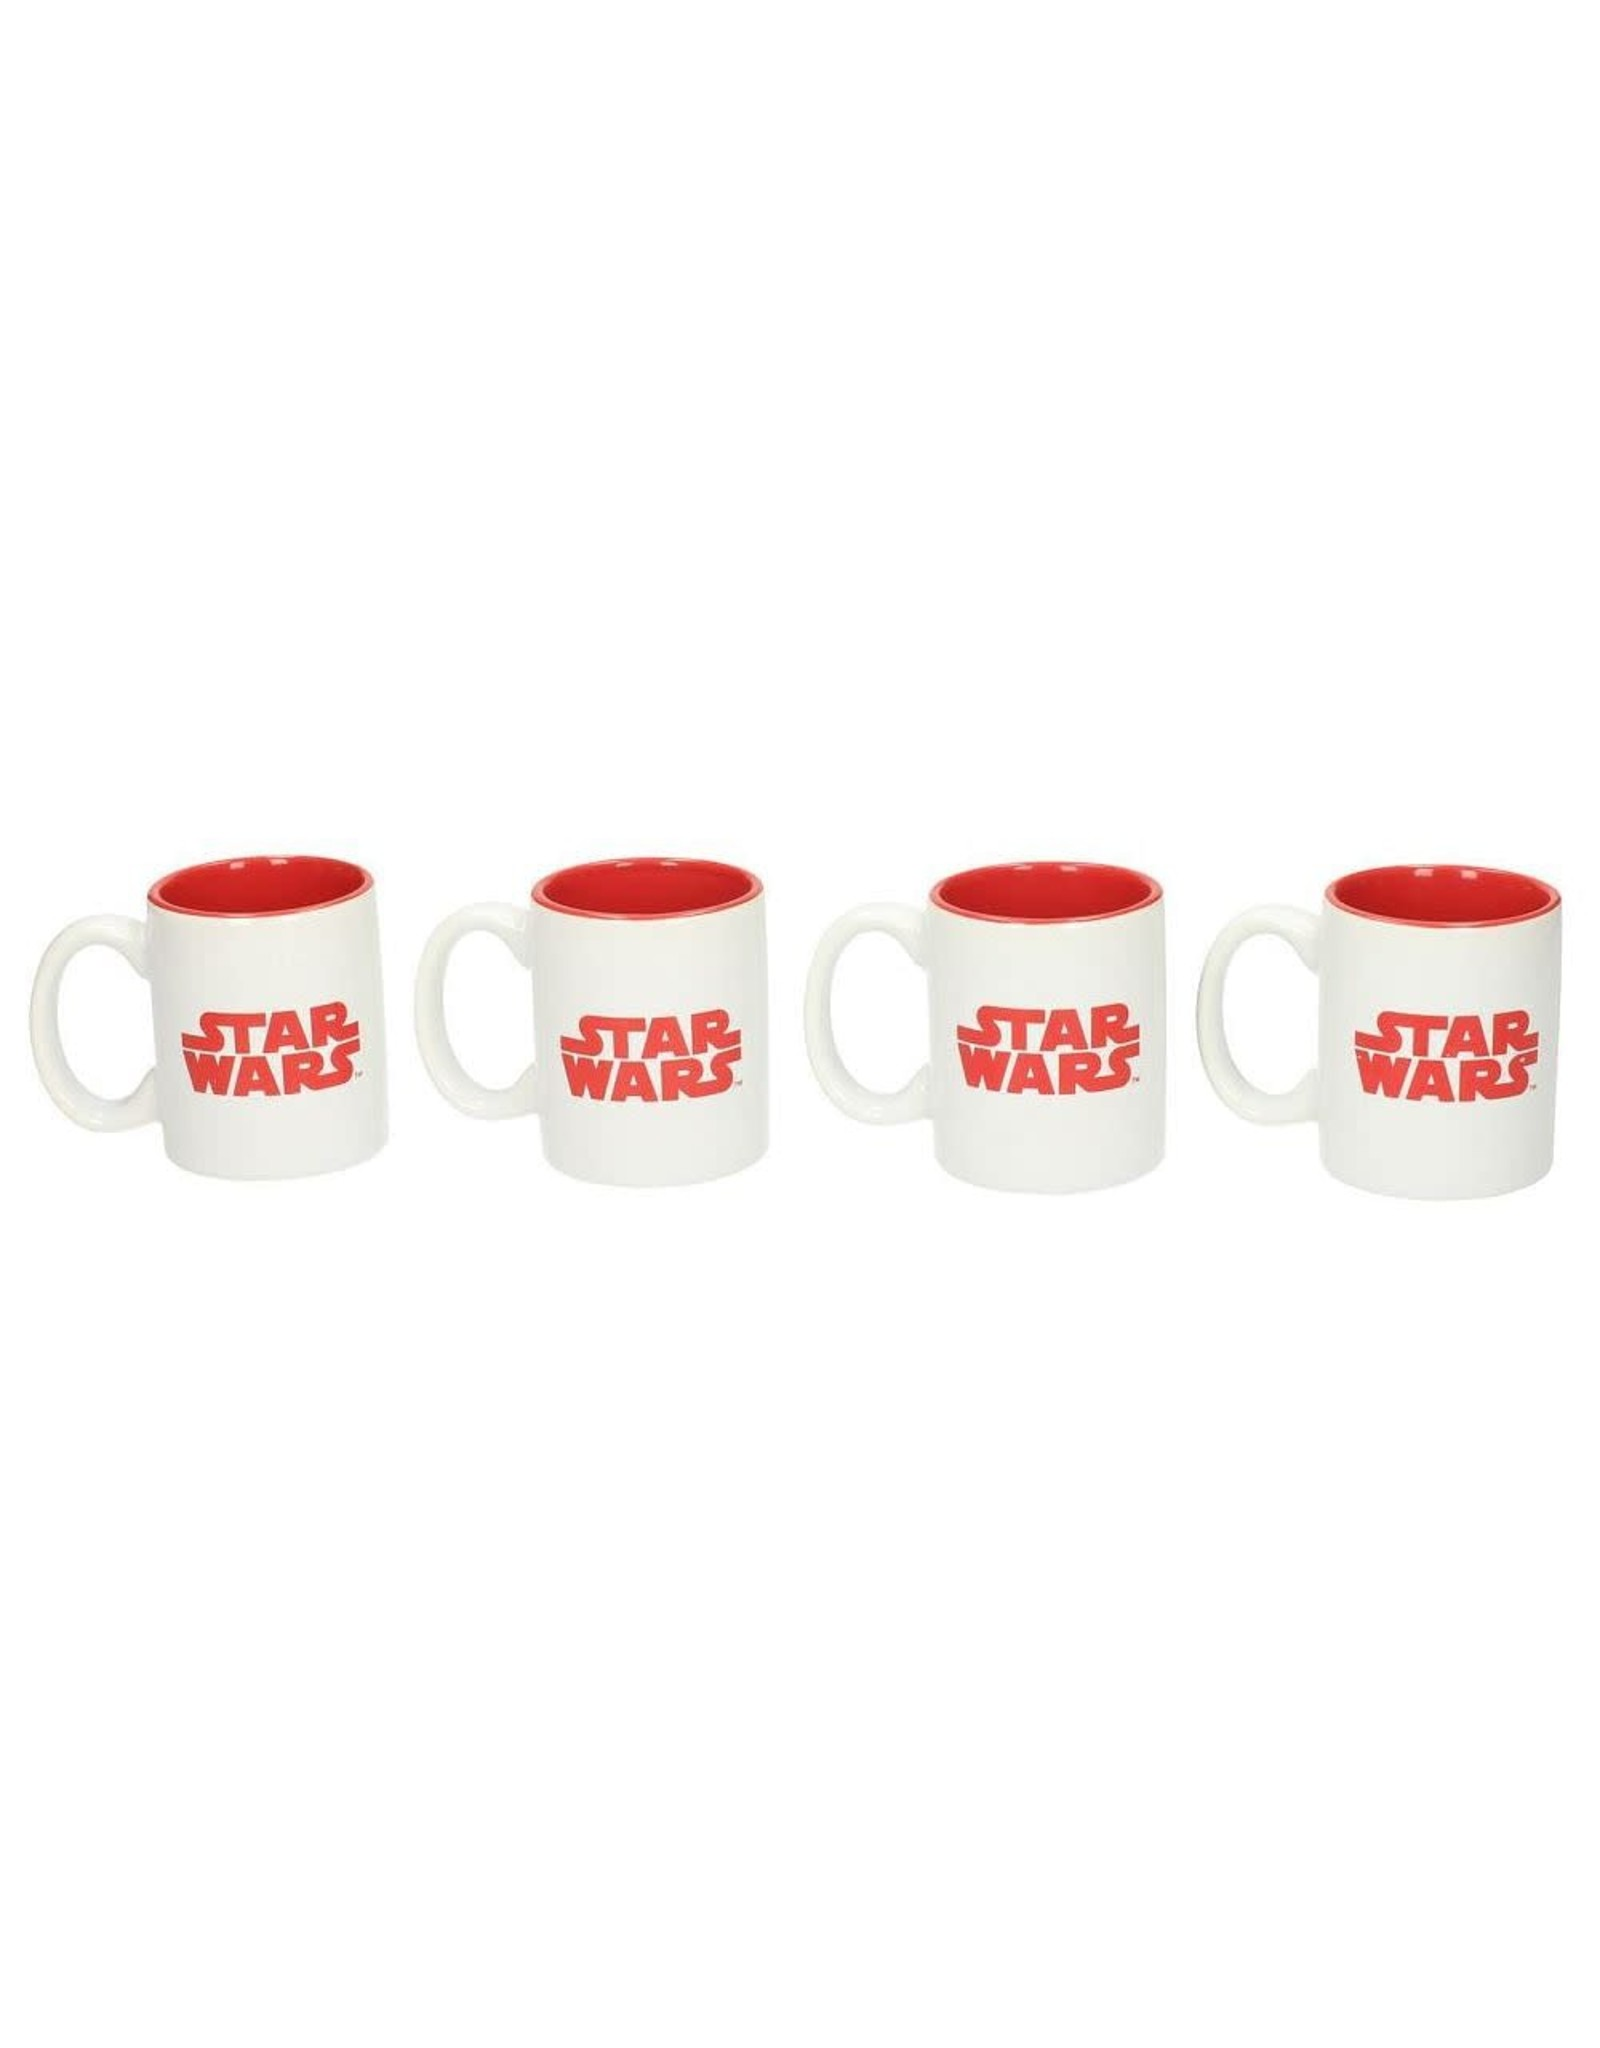 SD Toys STAR WARS Set of 4 Espresso Mugs - First Order